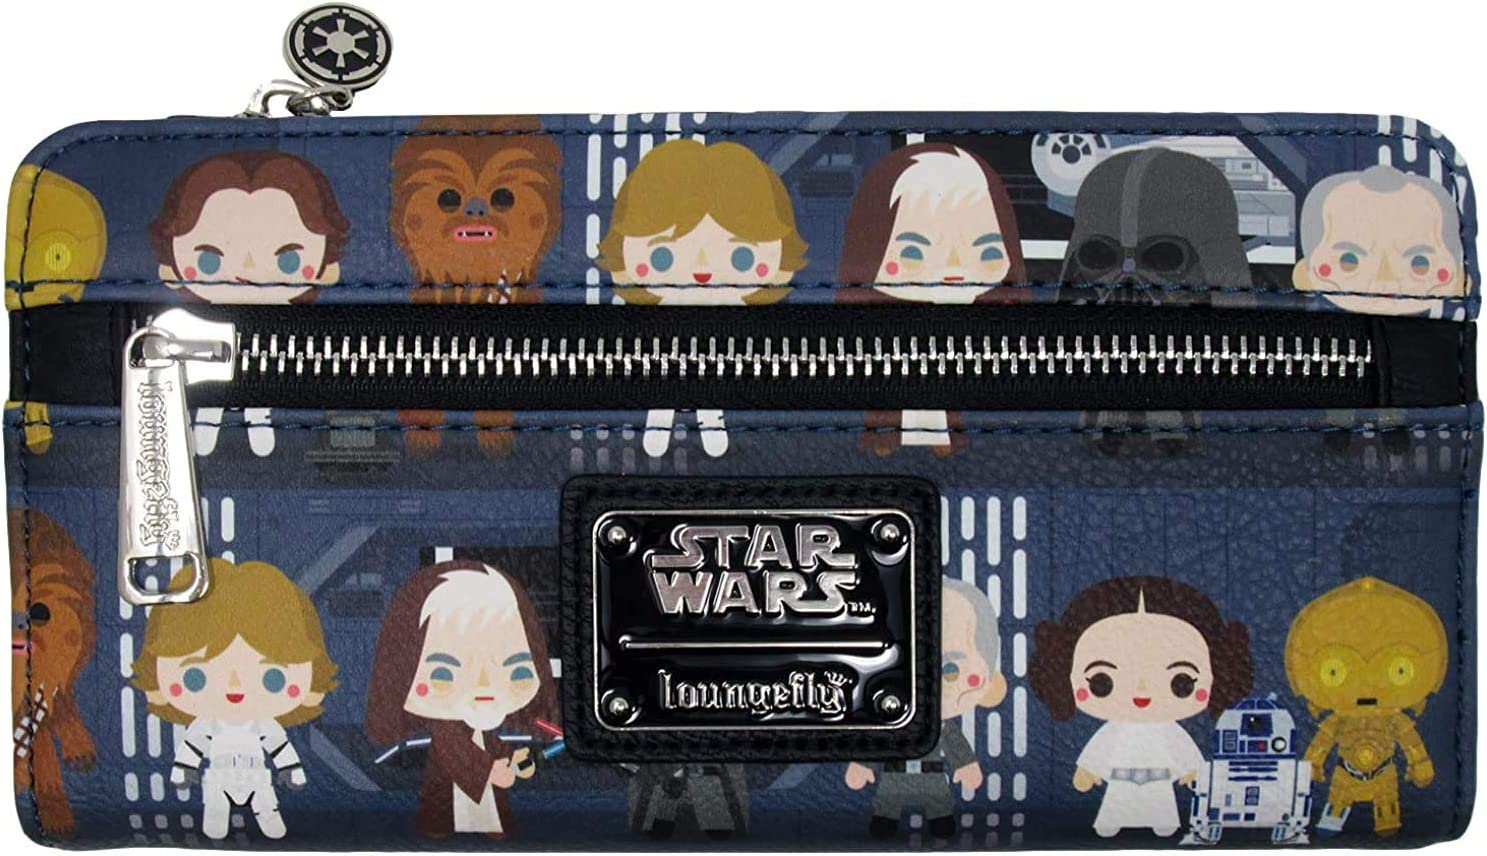 Loungefly Star Wars Death Star Chibi Characters Printed Faux Leather Wallet